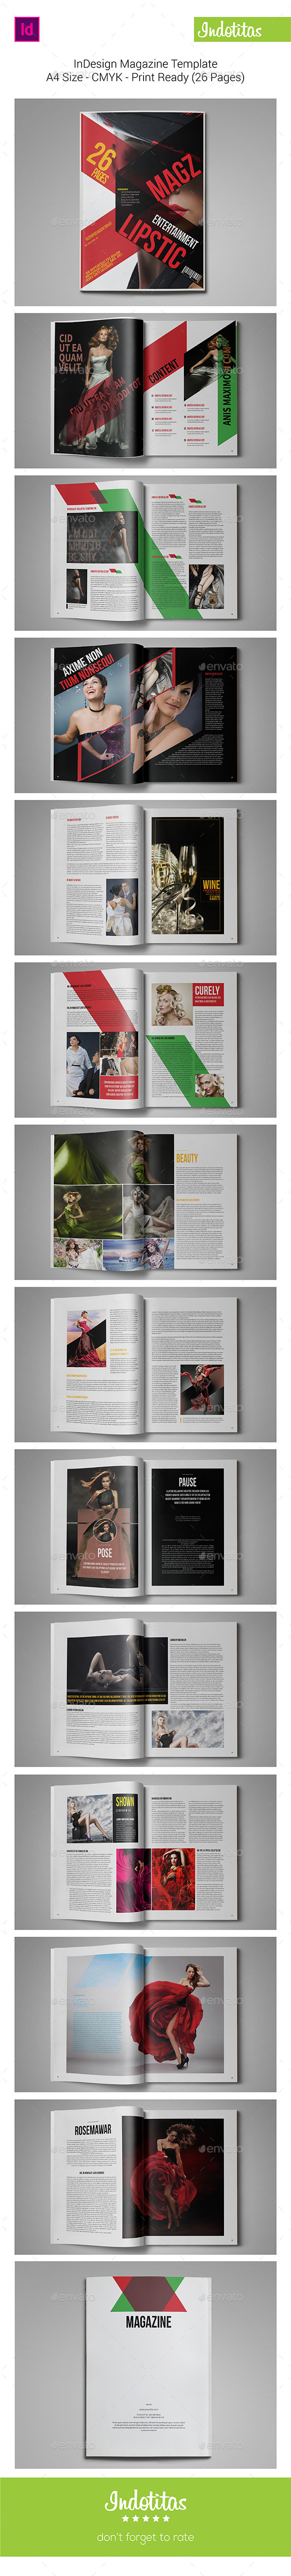 InDesign MagazineTemplate - Magazines Print Templates